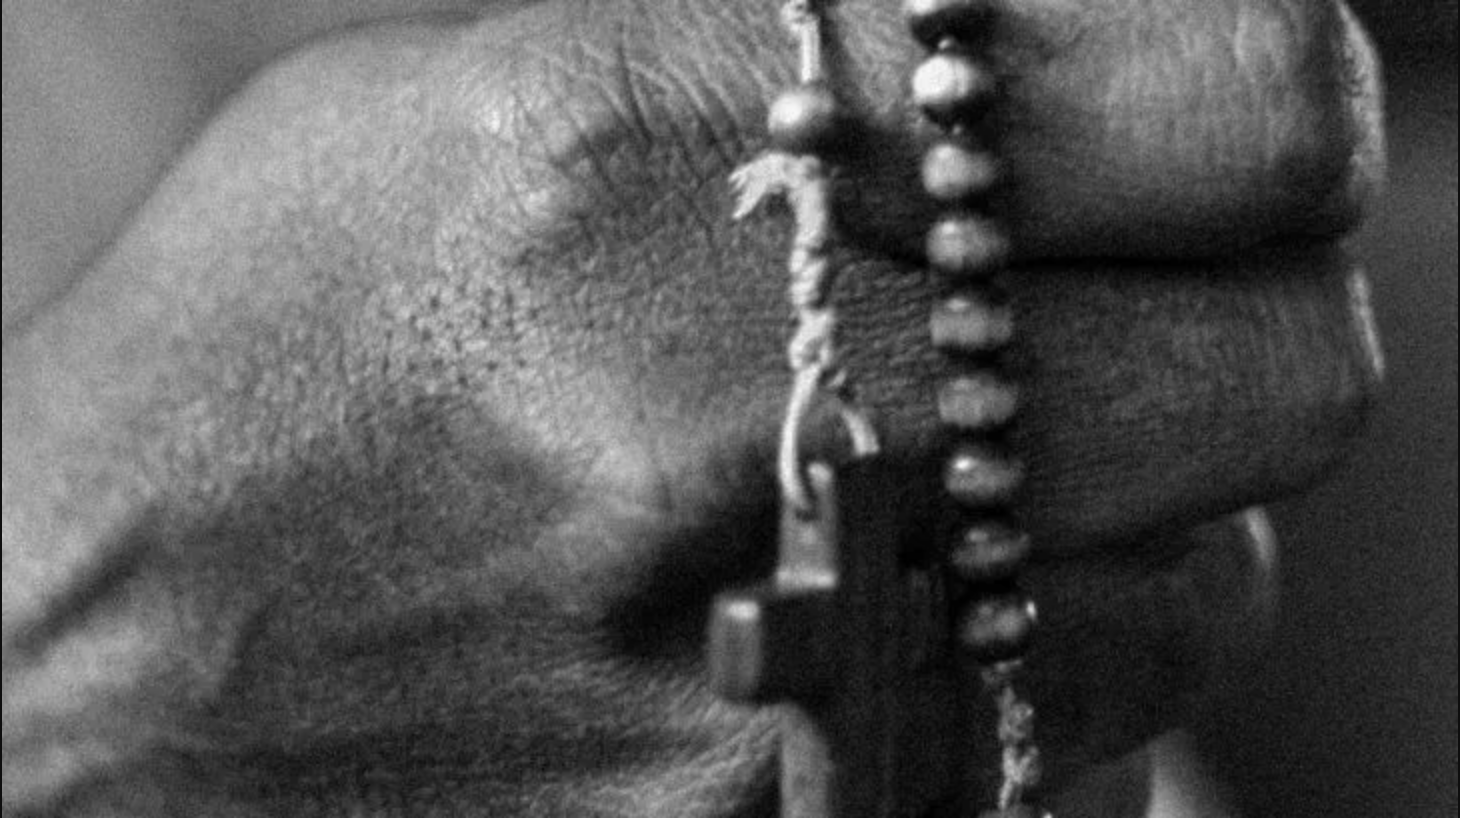 confronting white supremacy - Why I'm Writing a Book about Black Catholics and Systemic Racism22 July 2019written by Sacred Writes' media partner Dr. Tia Noelle Pratt